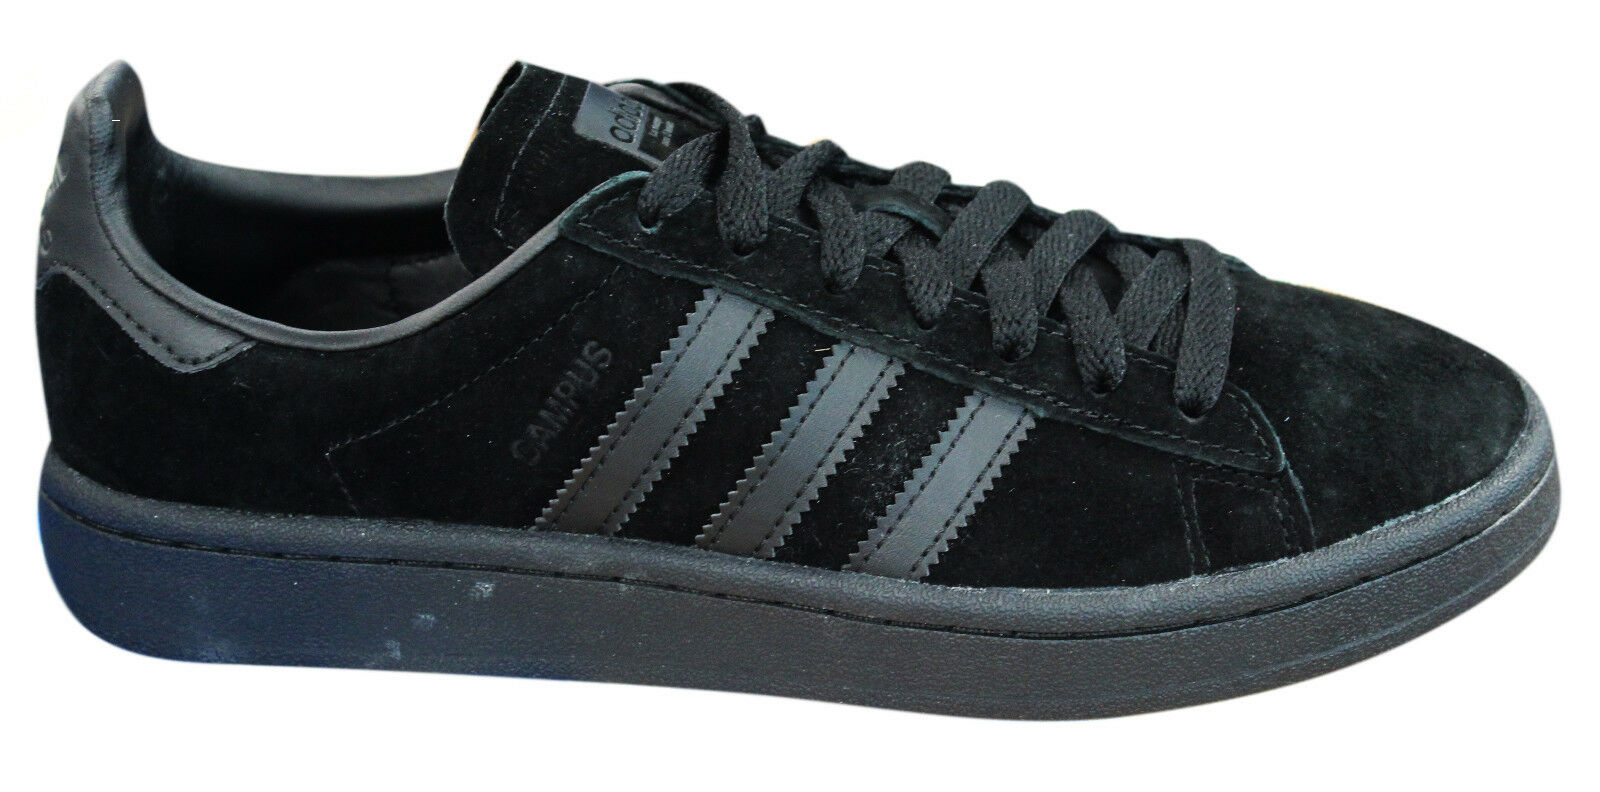 Adidas Originals Campus Mens Trainers Lace Up shoes Leather Black BZ0079 M17